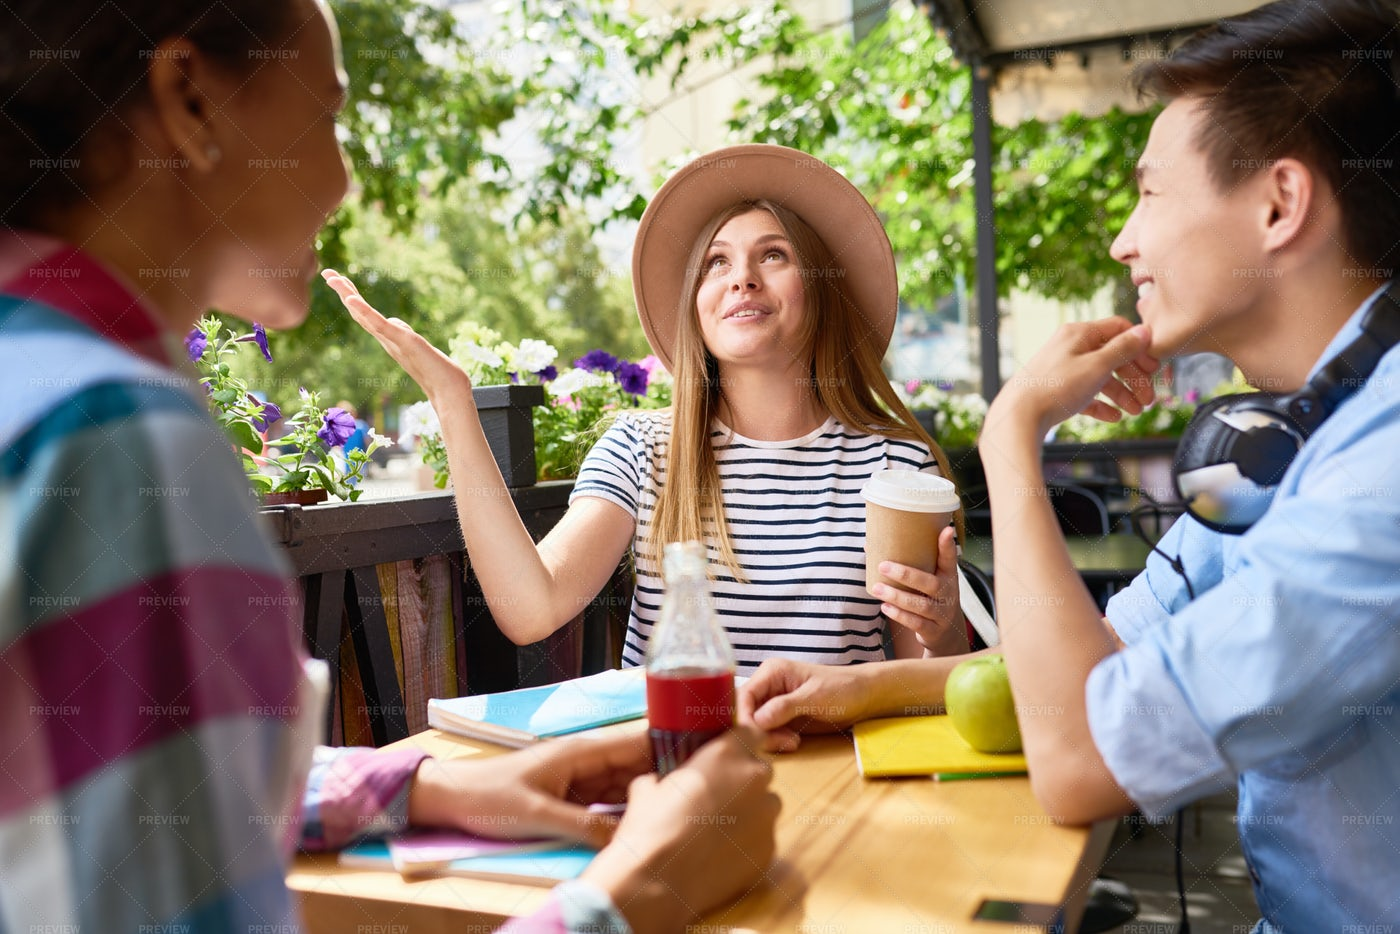 Young People Chatting In Cafe: Stock Photos